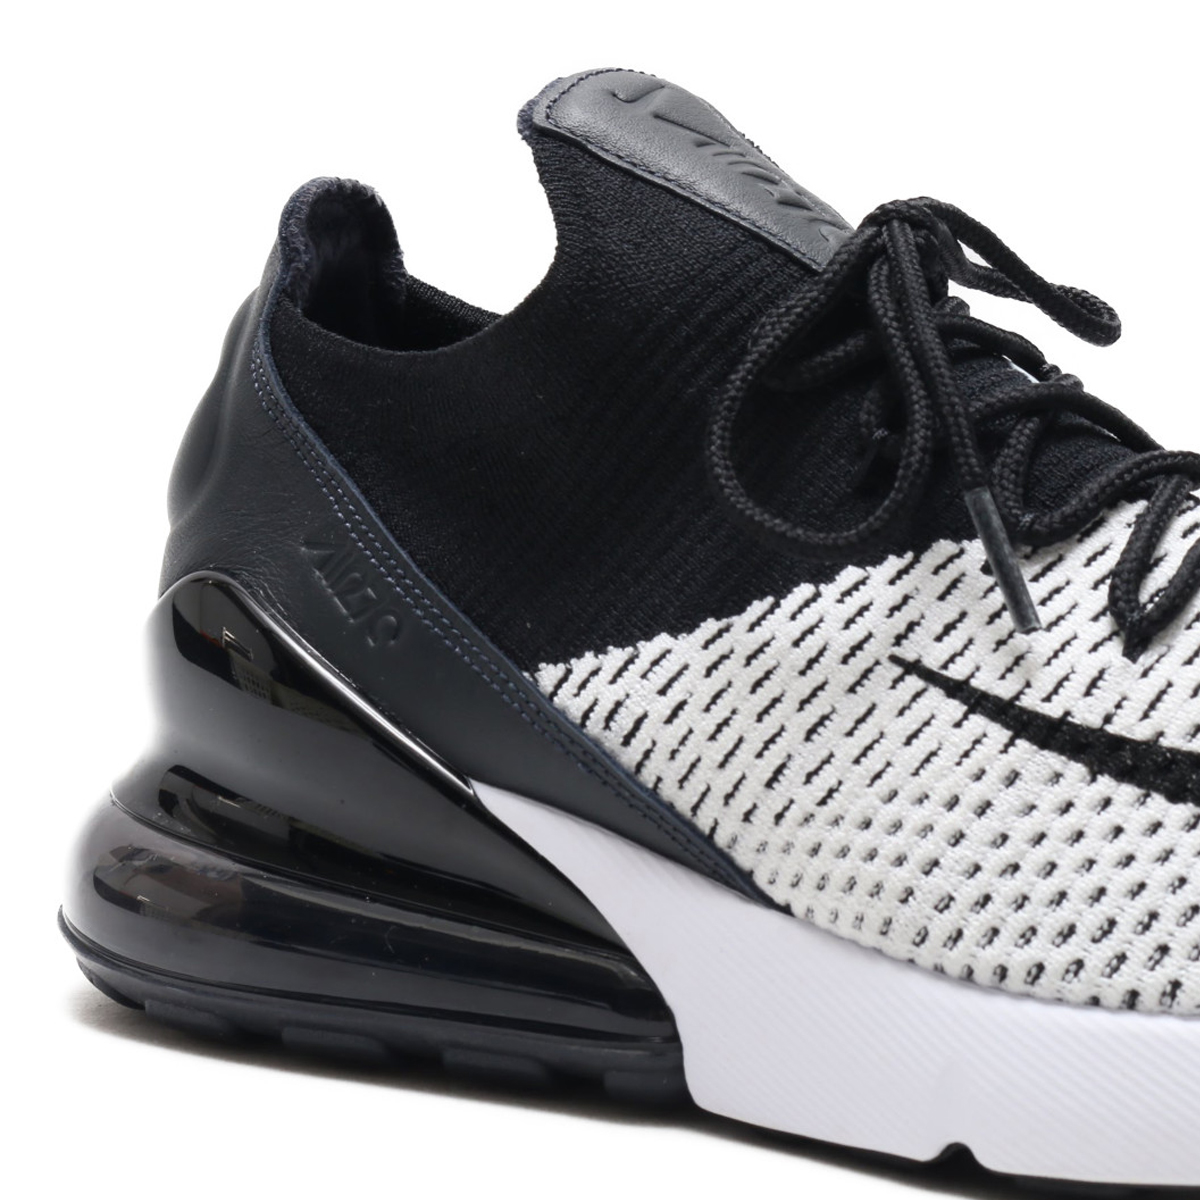 1ad8da12e7cc7 NIKE AIR MAX 270 FLYKNIT (Kie Ney AMAX 270 fried food knit) (WHITE BLACK- ANTHRACITE) 18SU-S